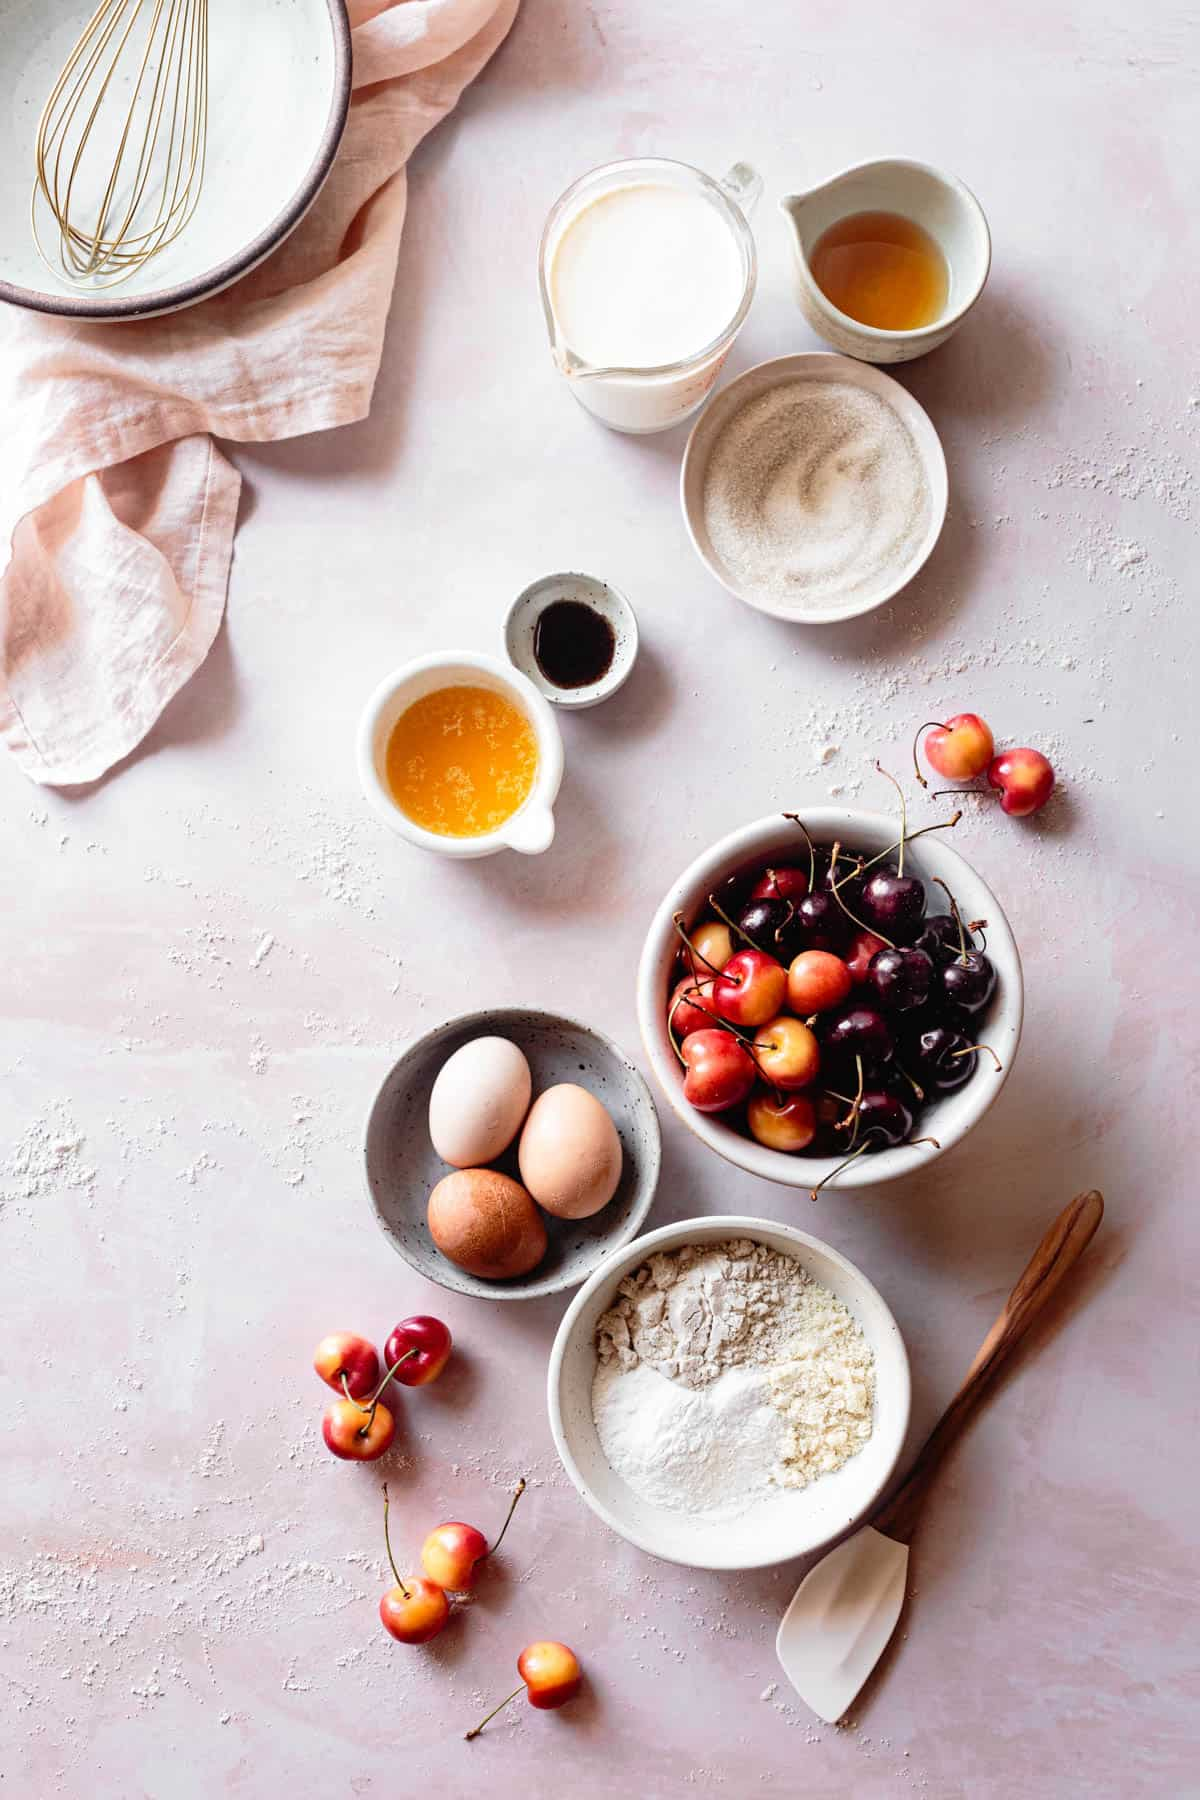 ingredients for Gluten Free Cherry Clafoutis